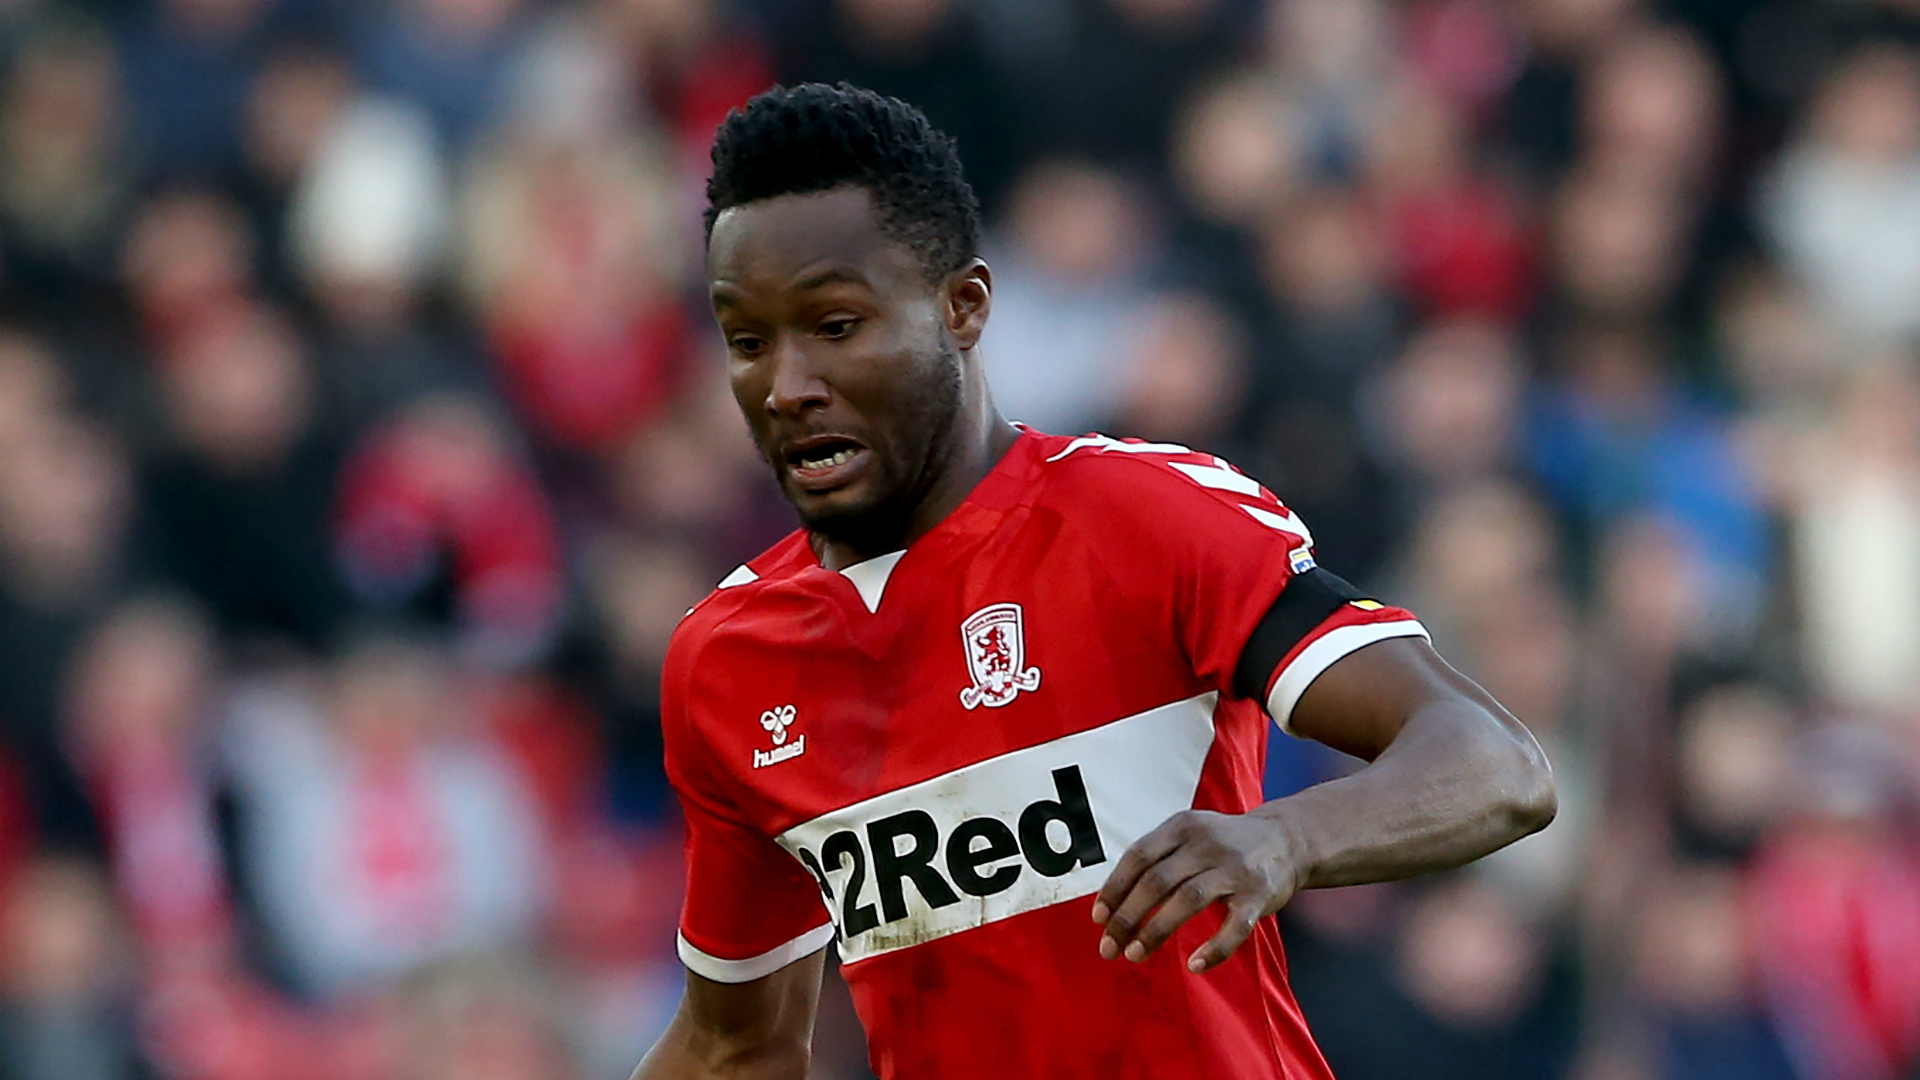 Middlesbrough fans composes song for Mikel Obi — Trending